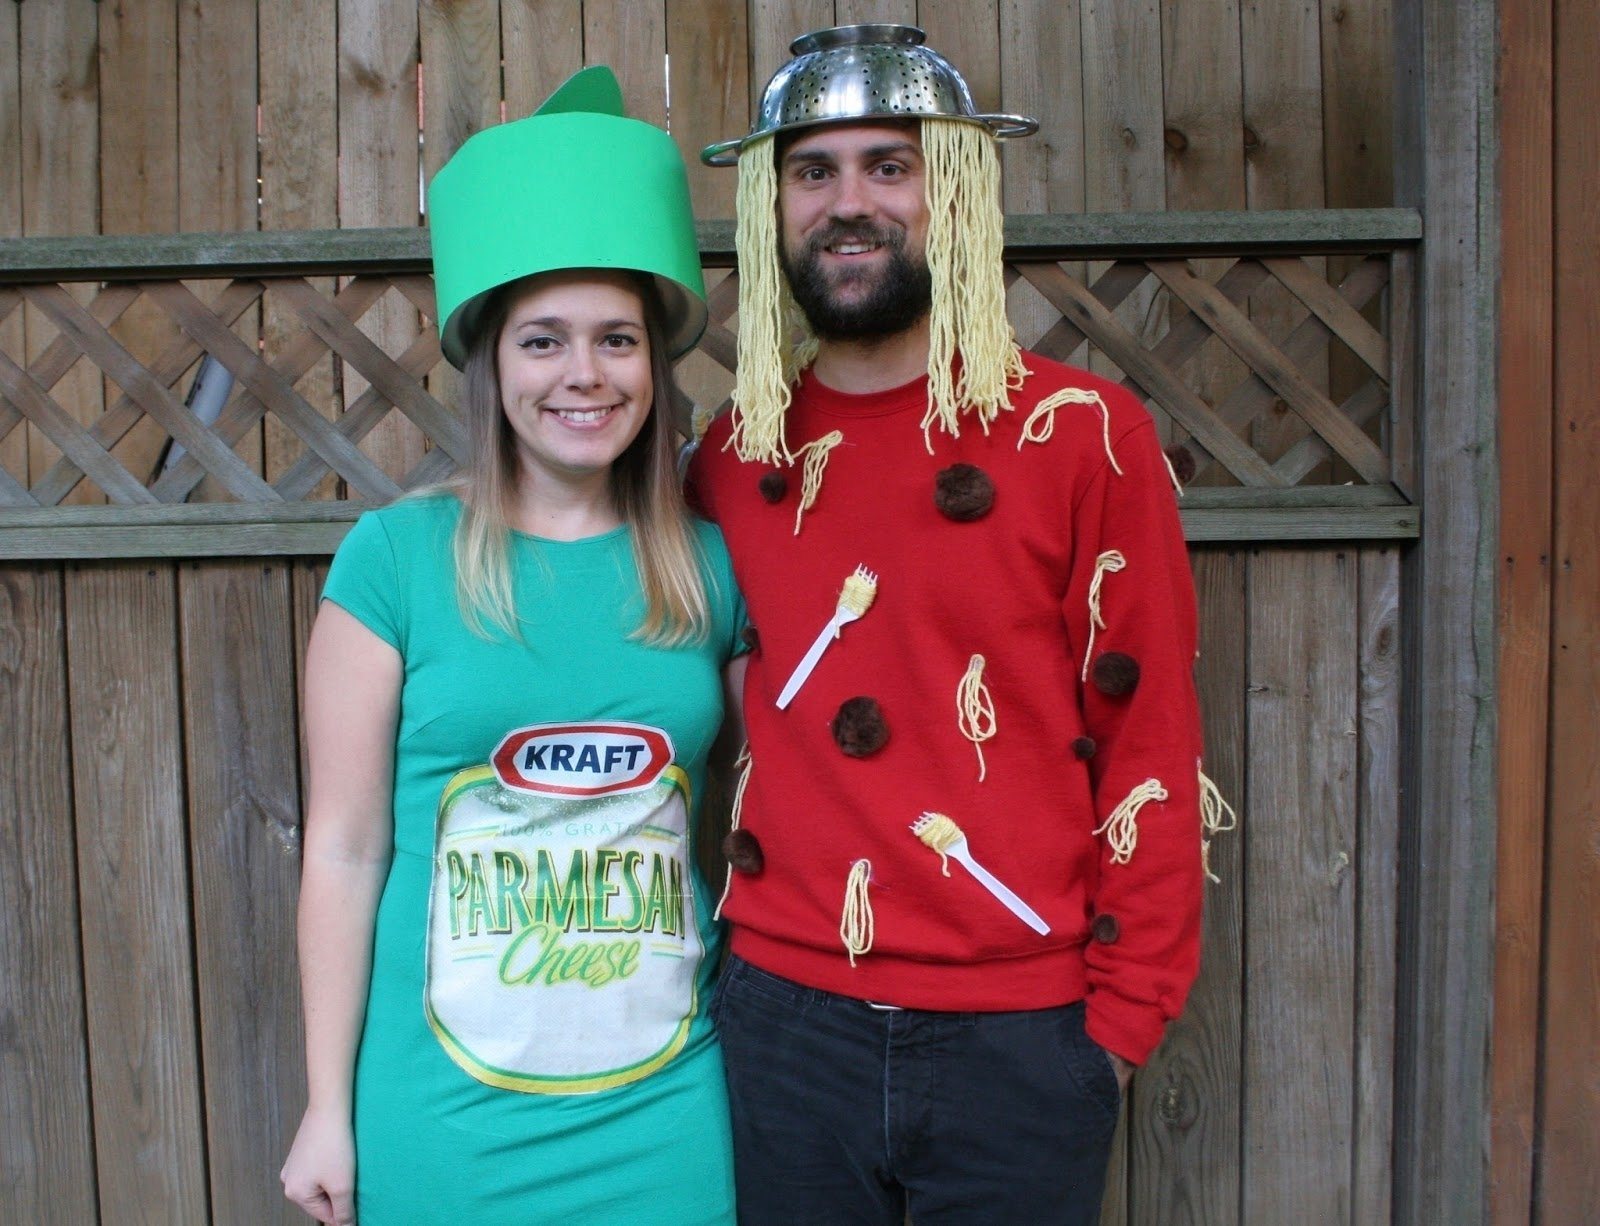 our halloween costumes: spaghetti & parmesan cheese - the surznick